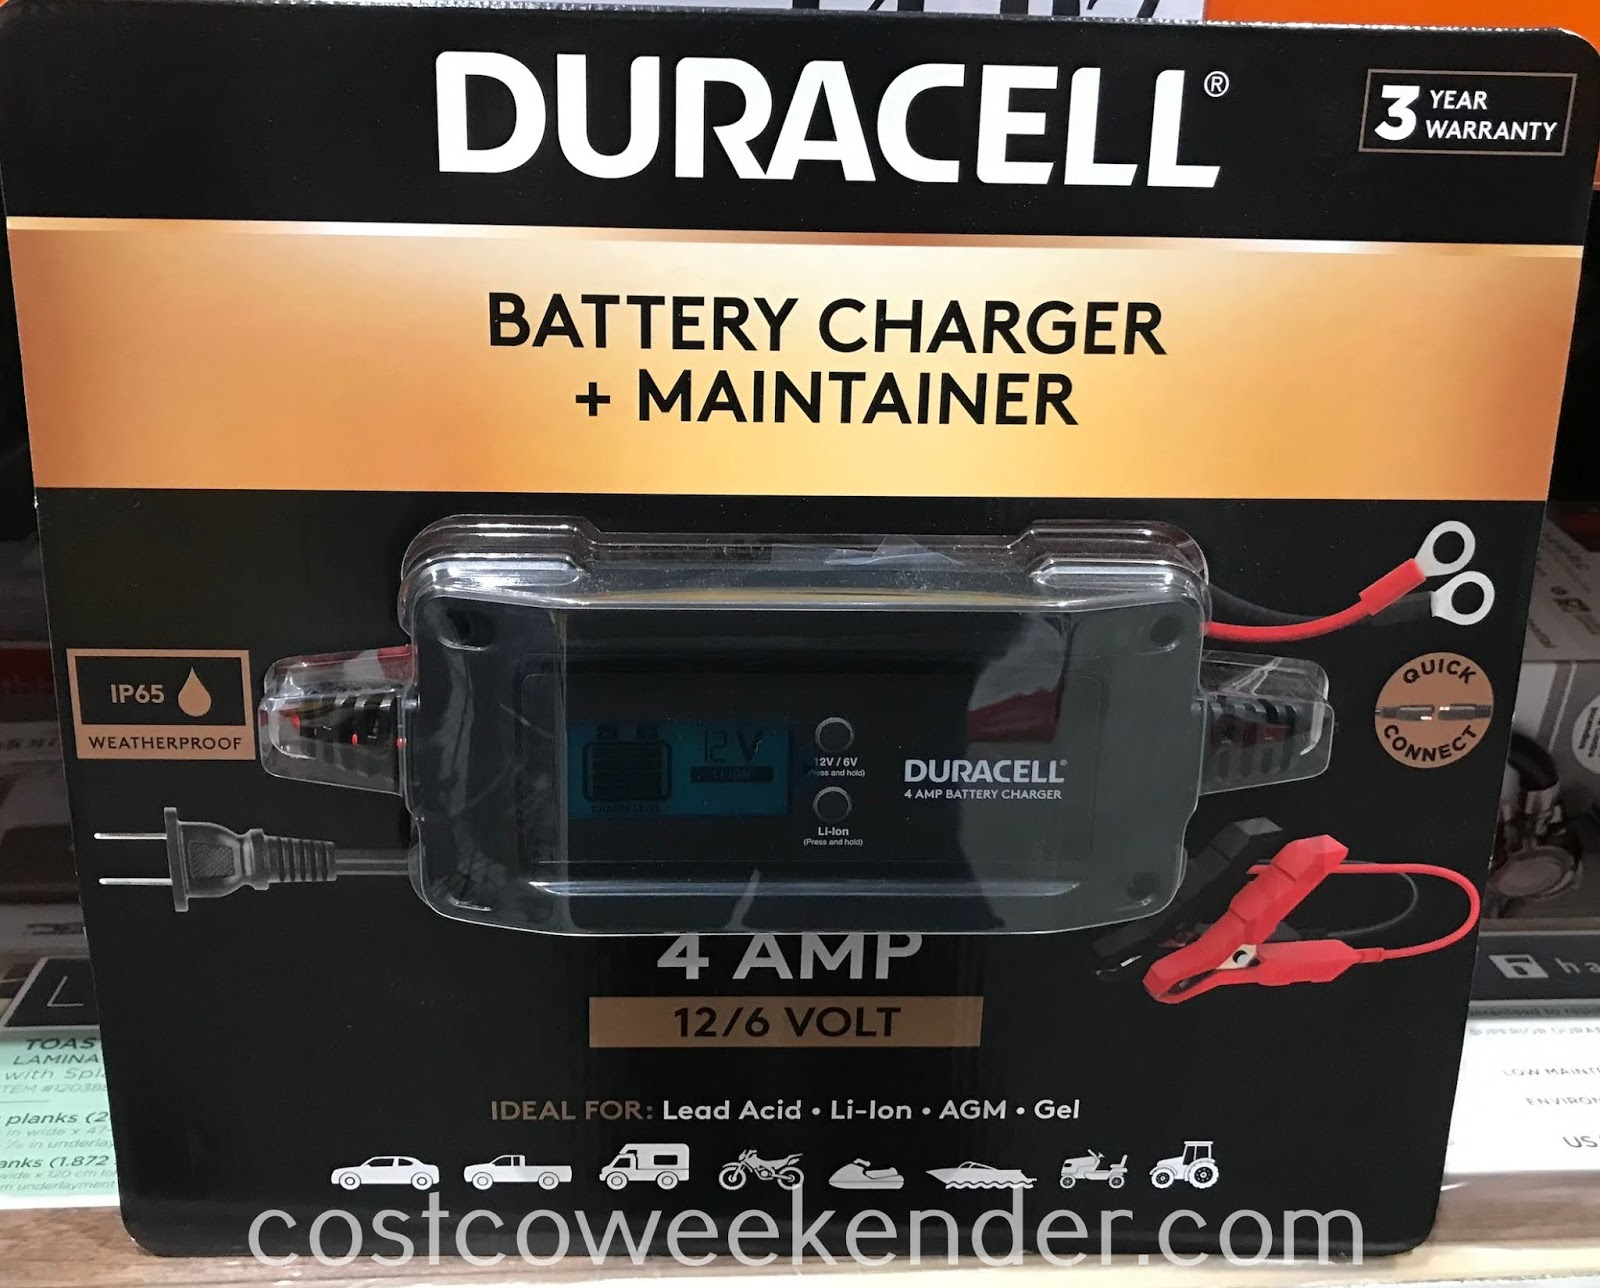 Easily charge your battery with the Duracell Battery Charger and Maintainer